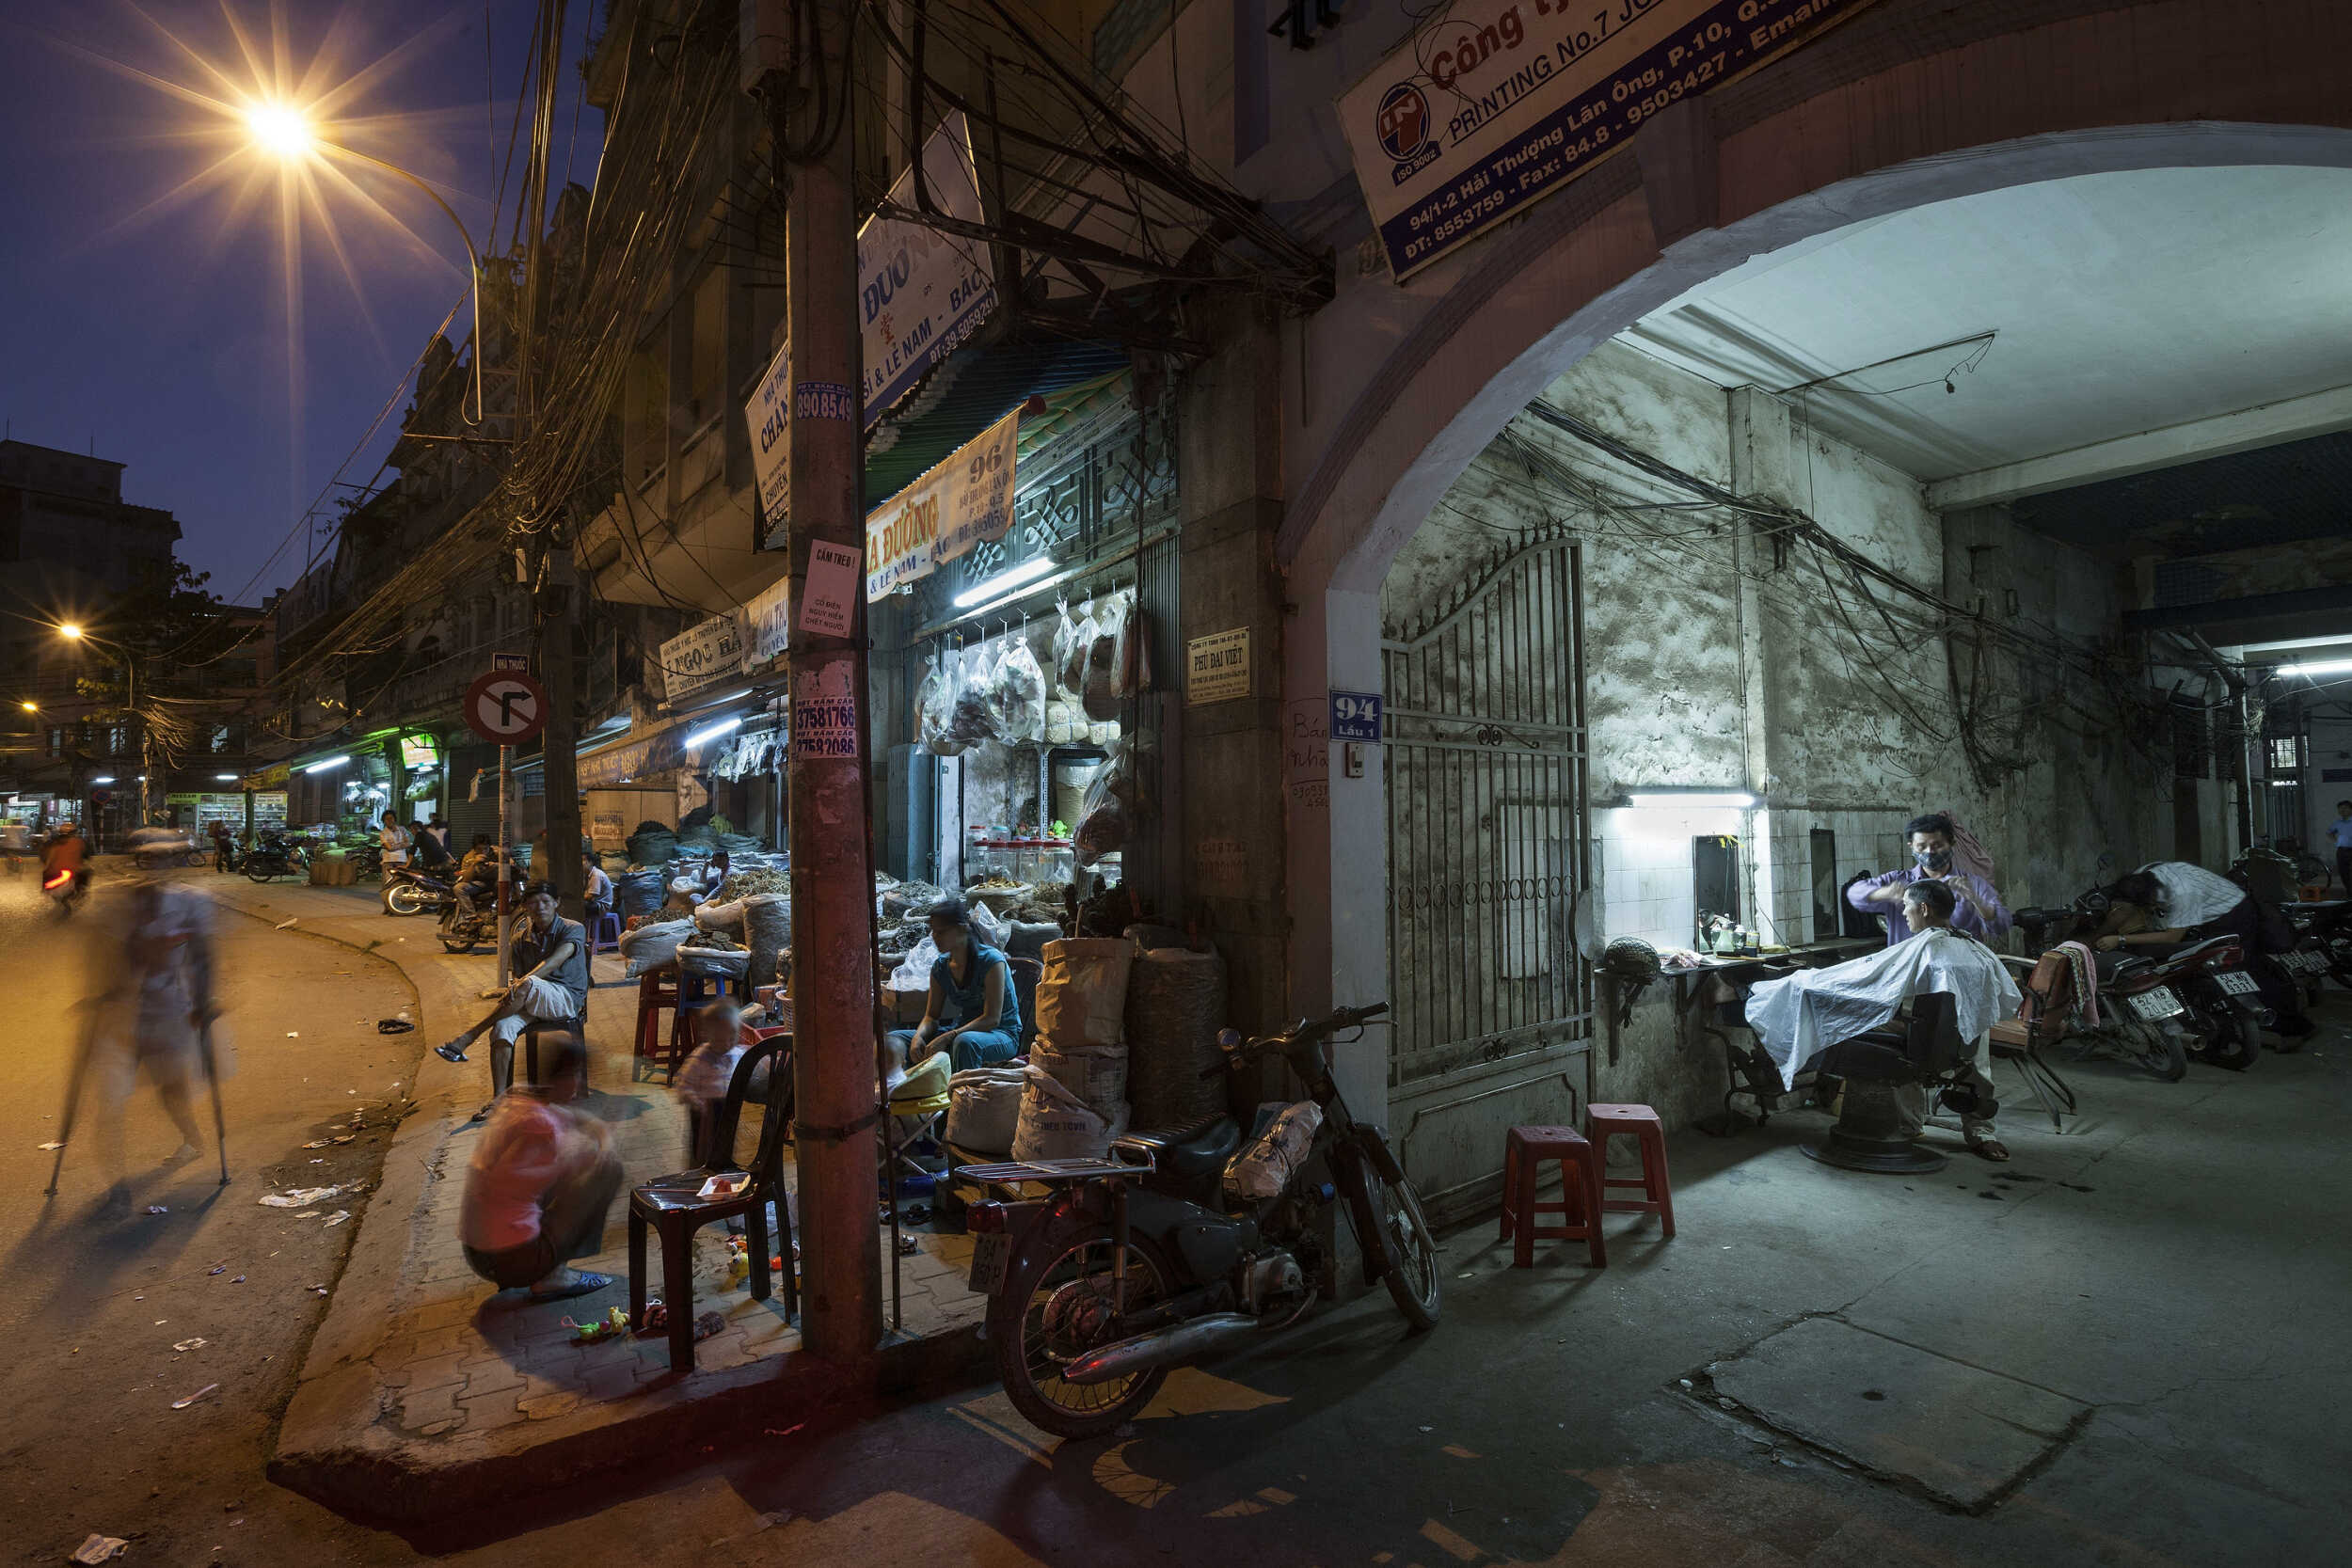 Editorial photograph of an alleyway barbershop along a street lined with traditional herb shops in Cholon, Ho chi Minh City, Vietnam.